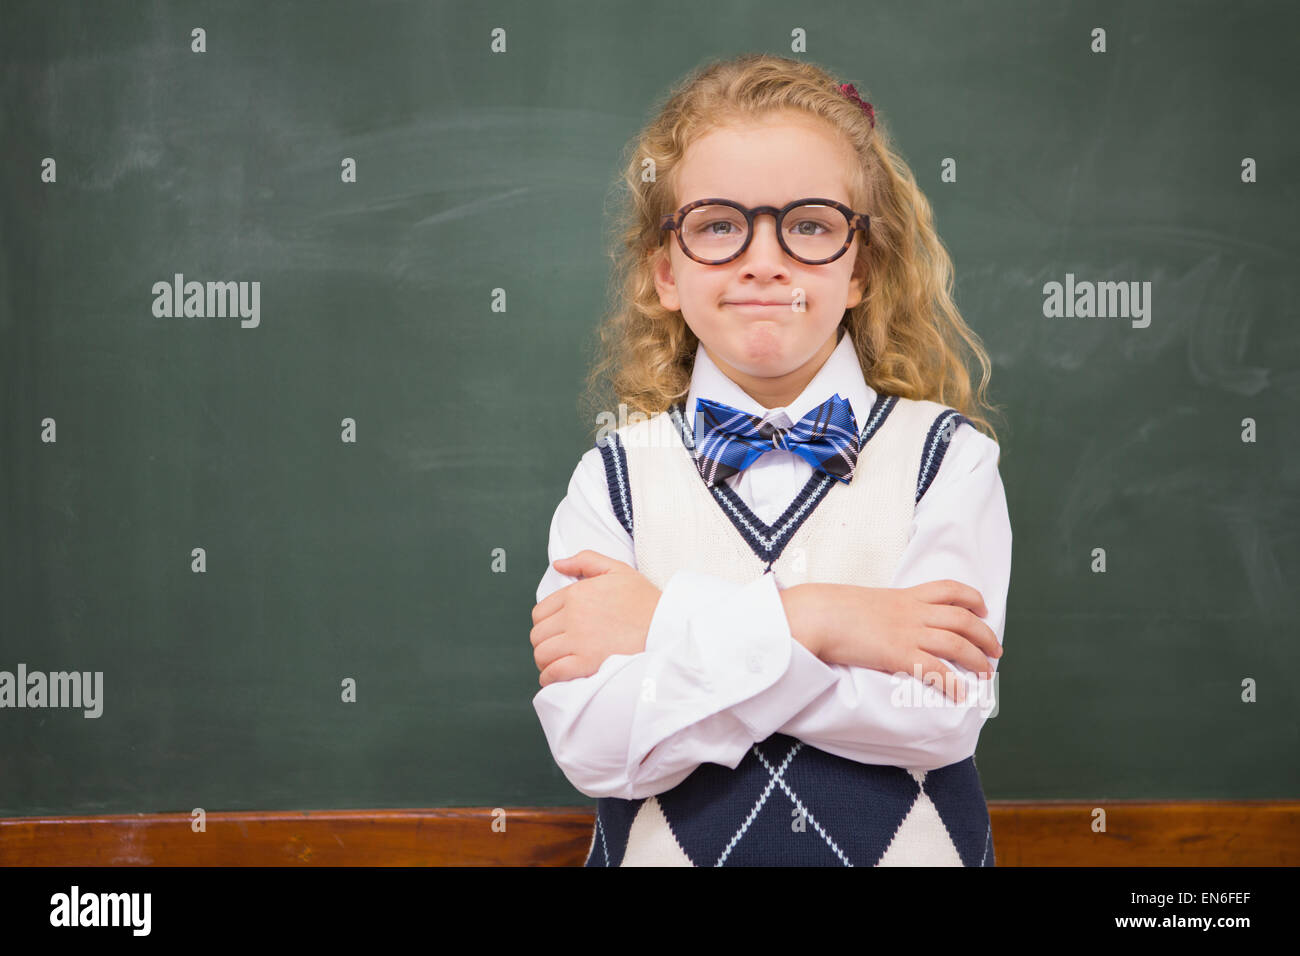 Perplex pupil looking at camera with arms crossed - Stock Image